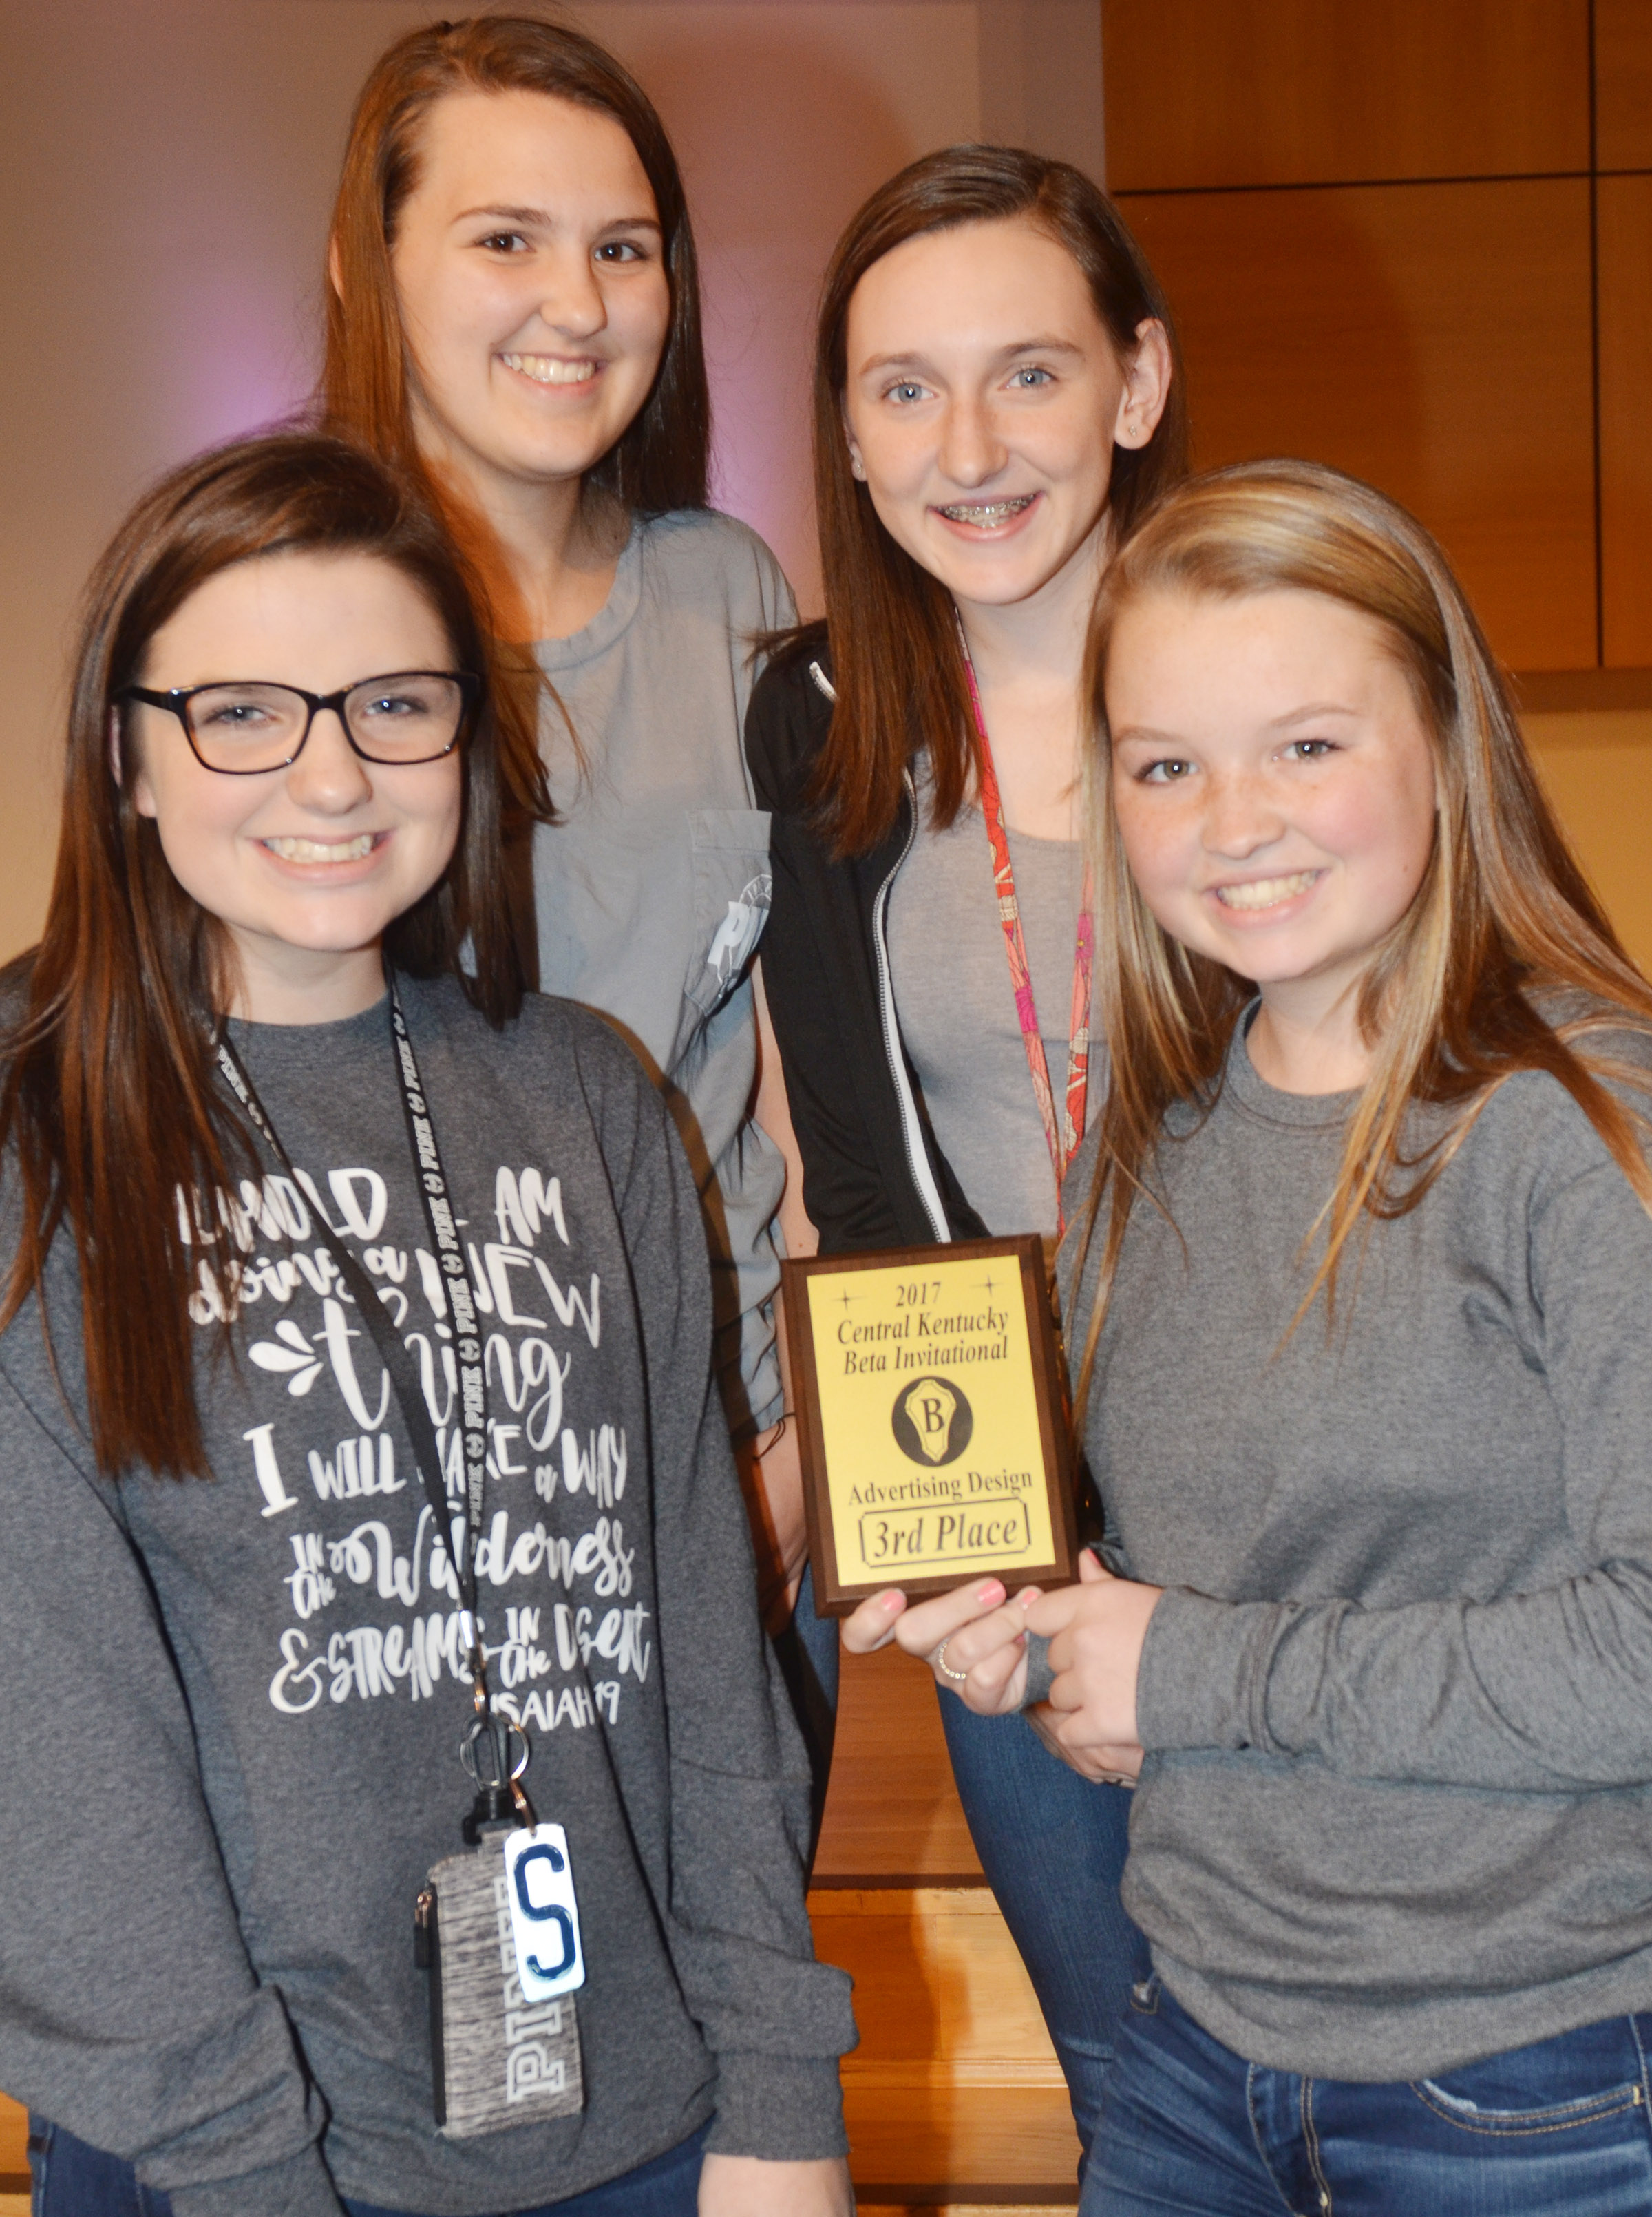 CHS Beta Club members brought home several awards on Thursday, Oct. 19, at the annual Central Kentucky Beta Invitational. From left, Sydney Wilson, Haley Morris, Zoe McAninch and Kaleigh Hunt won third place in the advertising design competition.